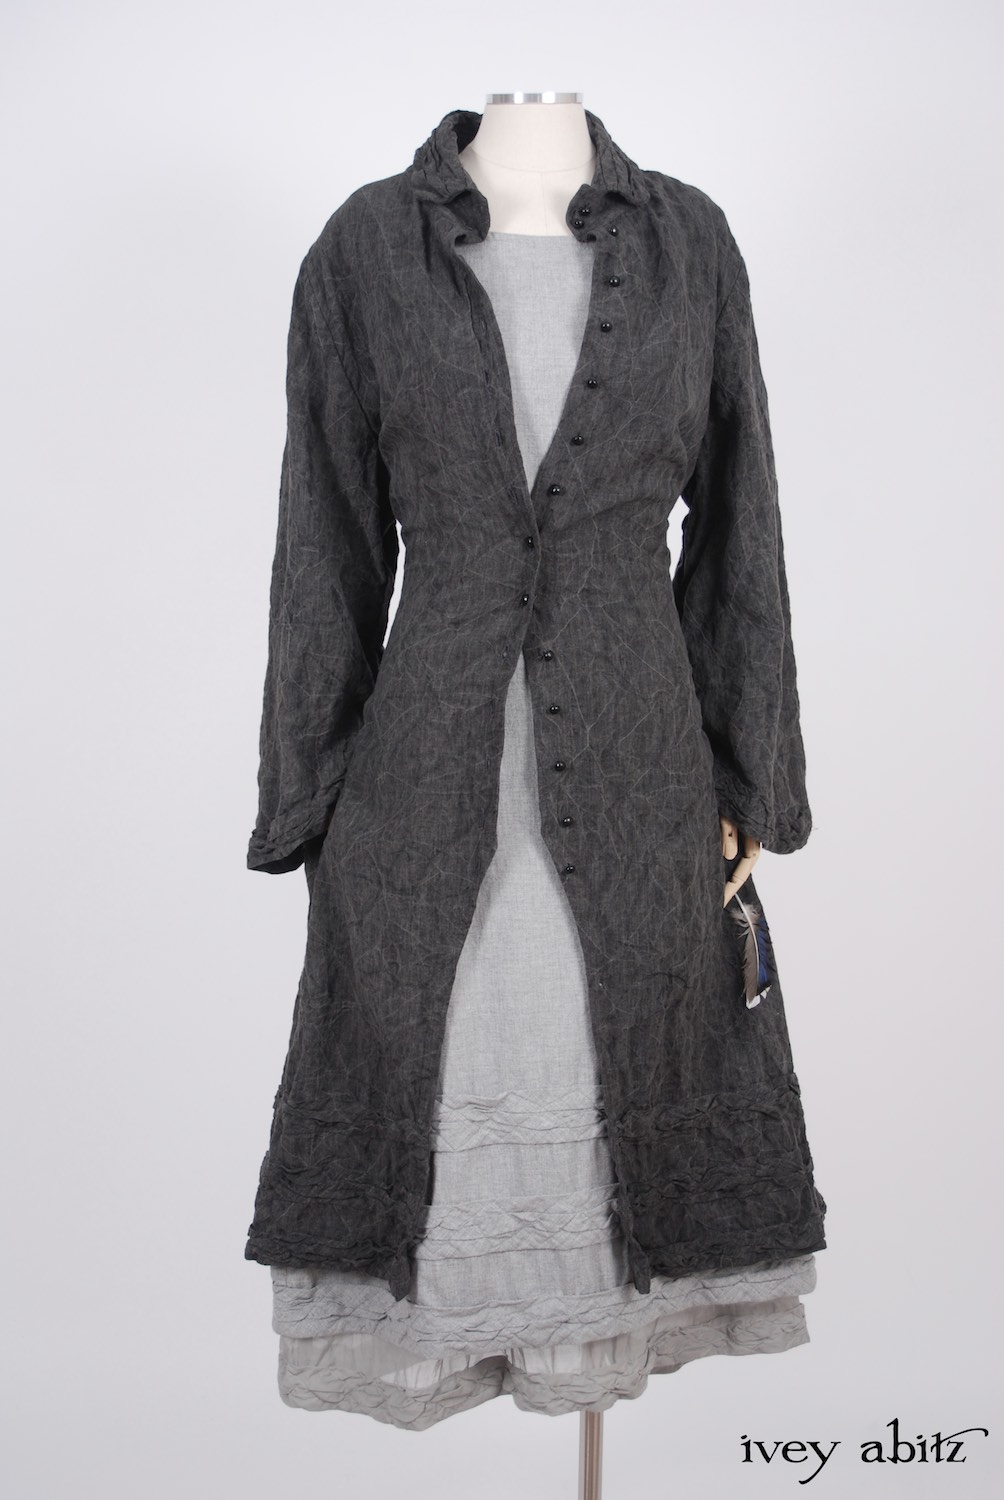 Ivey Abitz - Bartholomew Duster Coat in Sparrow Grey Antiqued Linen  - Tollie Frock in Sparrow Grey Softest Cotton Twill, High Water Length  - Tollie Frock in Sparrow Grey Wispy Silk Voile, Low Water Length